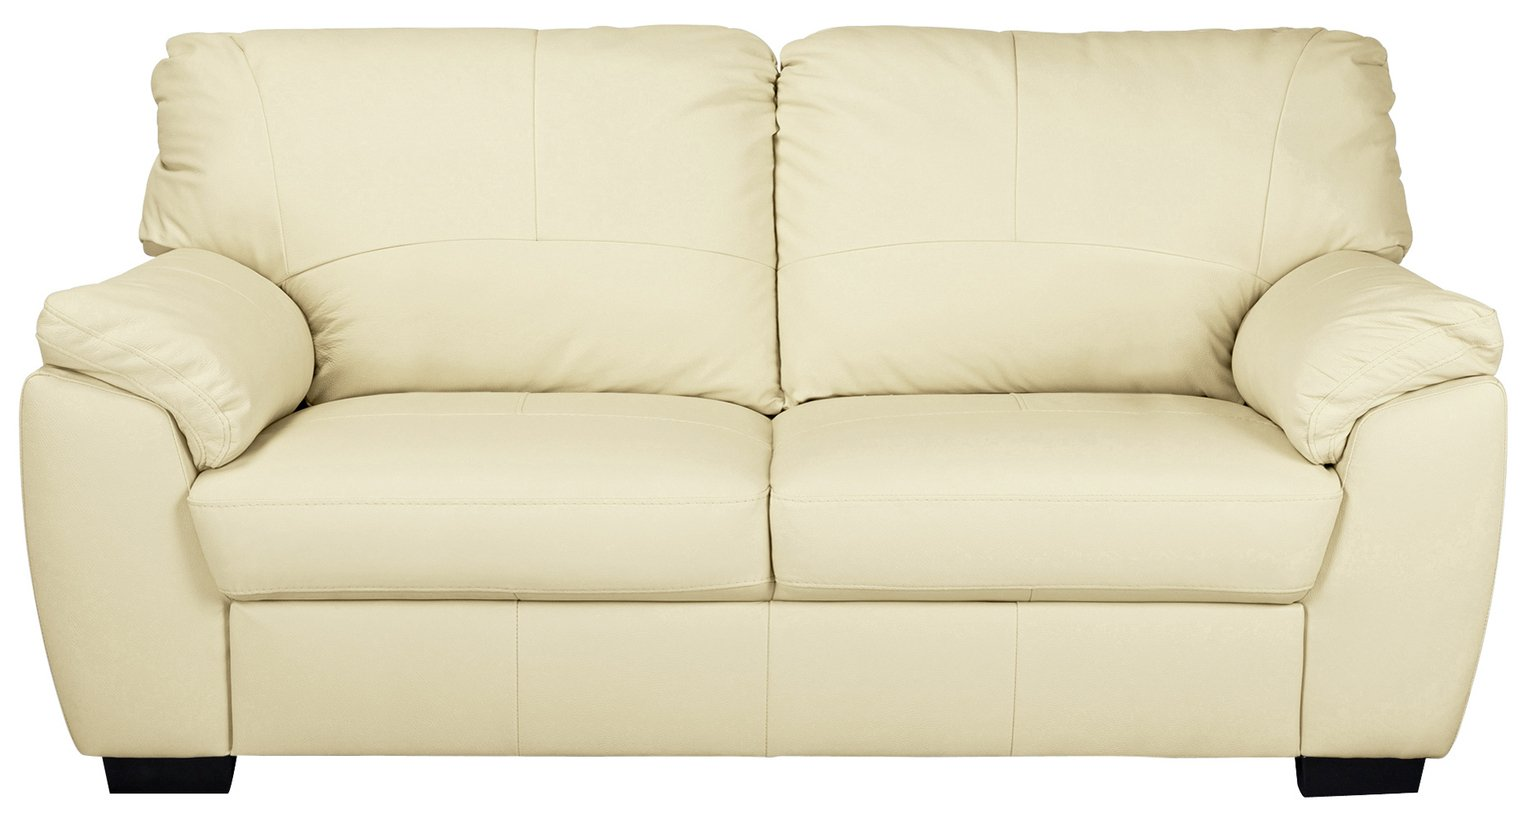 Sofa Settee Argos Buy Argos Home Milano 3 Seater Leather Sofa Ivory Sofas